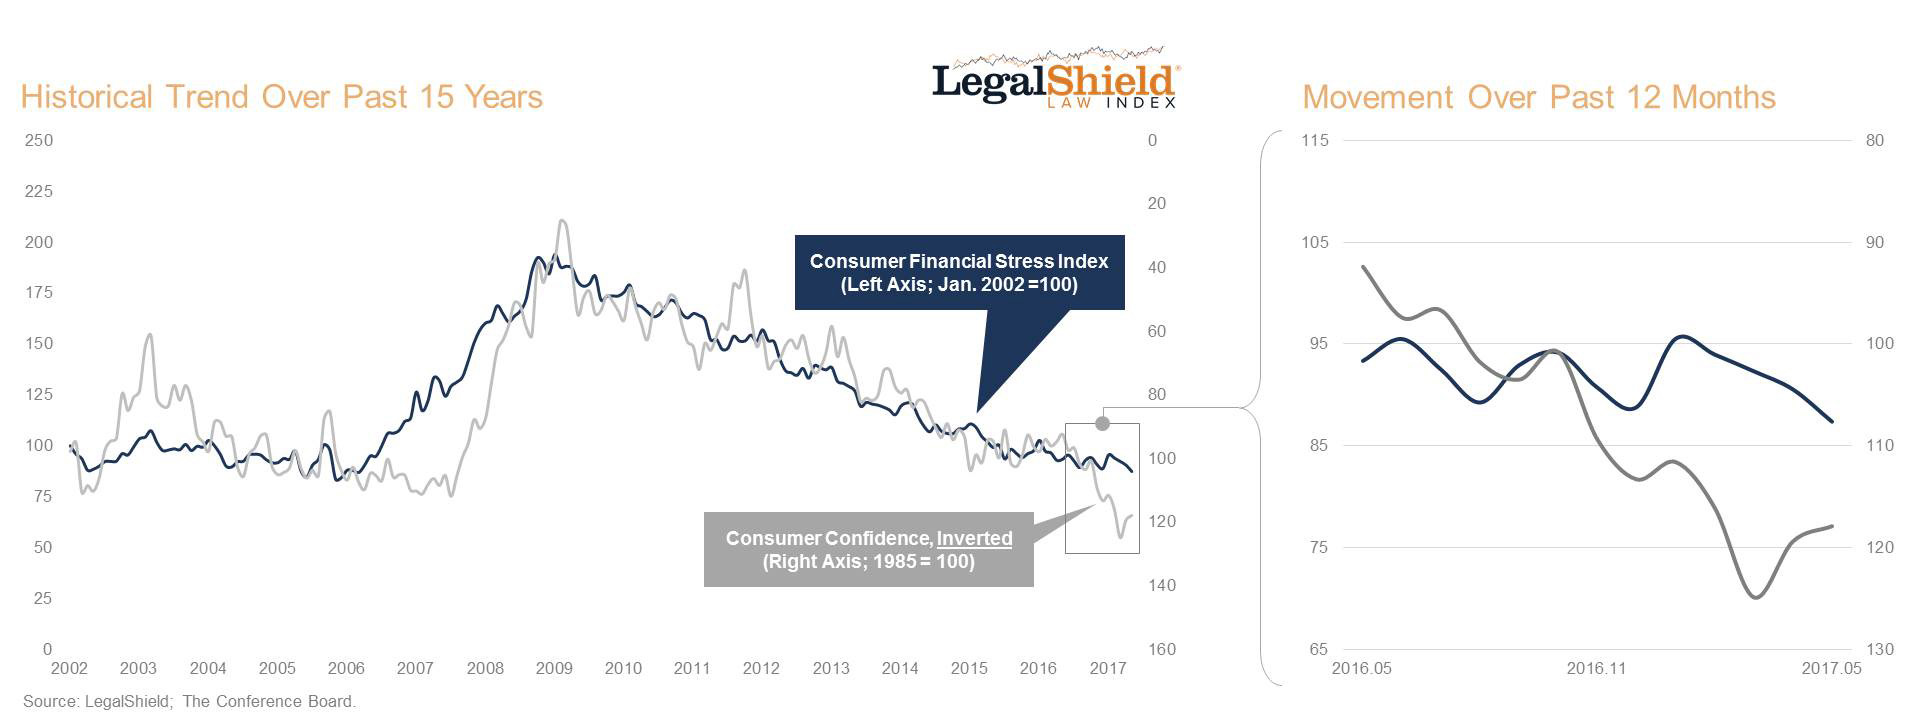 New LegalShield Law Index Brings Leading Indicators Of Actionable, Hard Data To Reveal Economic Trends